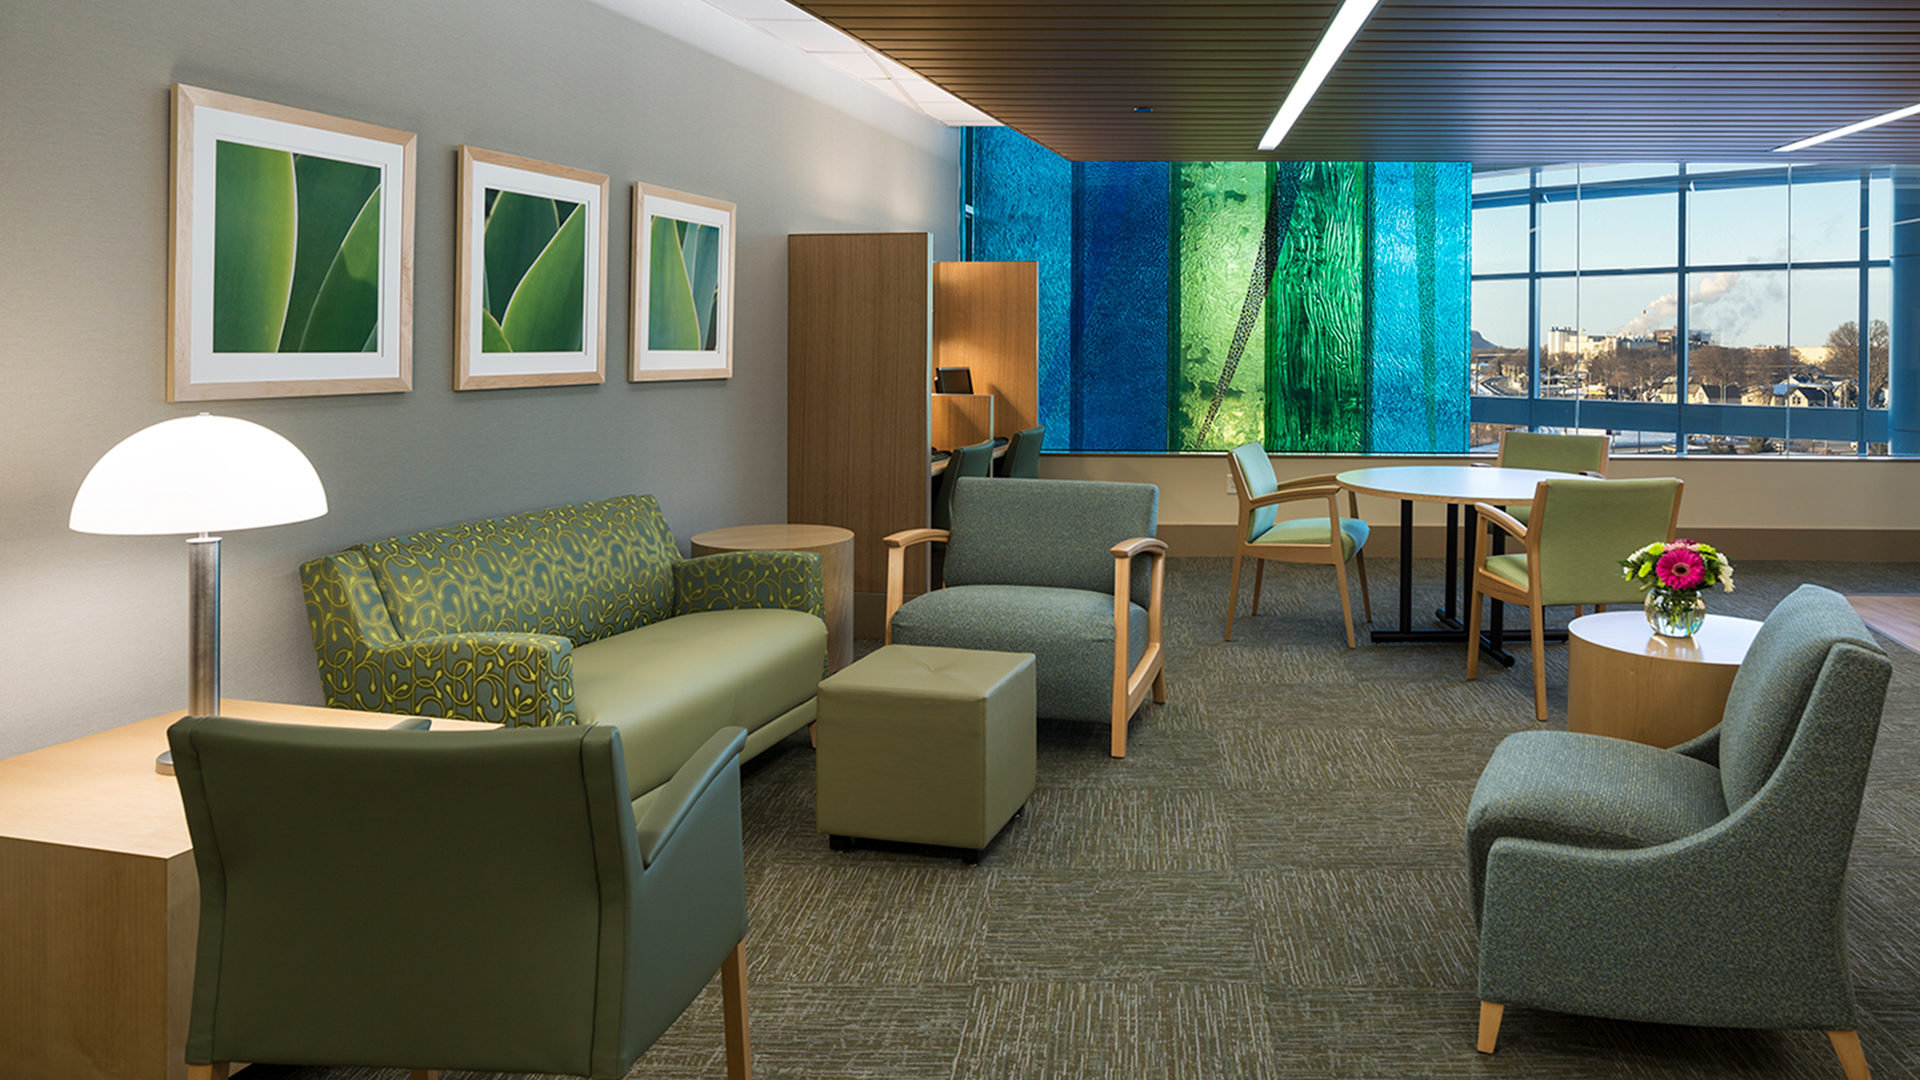 Gundersen Healthcare System Hospital Interior Second Floor Waiting Area Featuring Stained Glass Feature